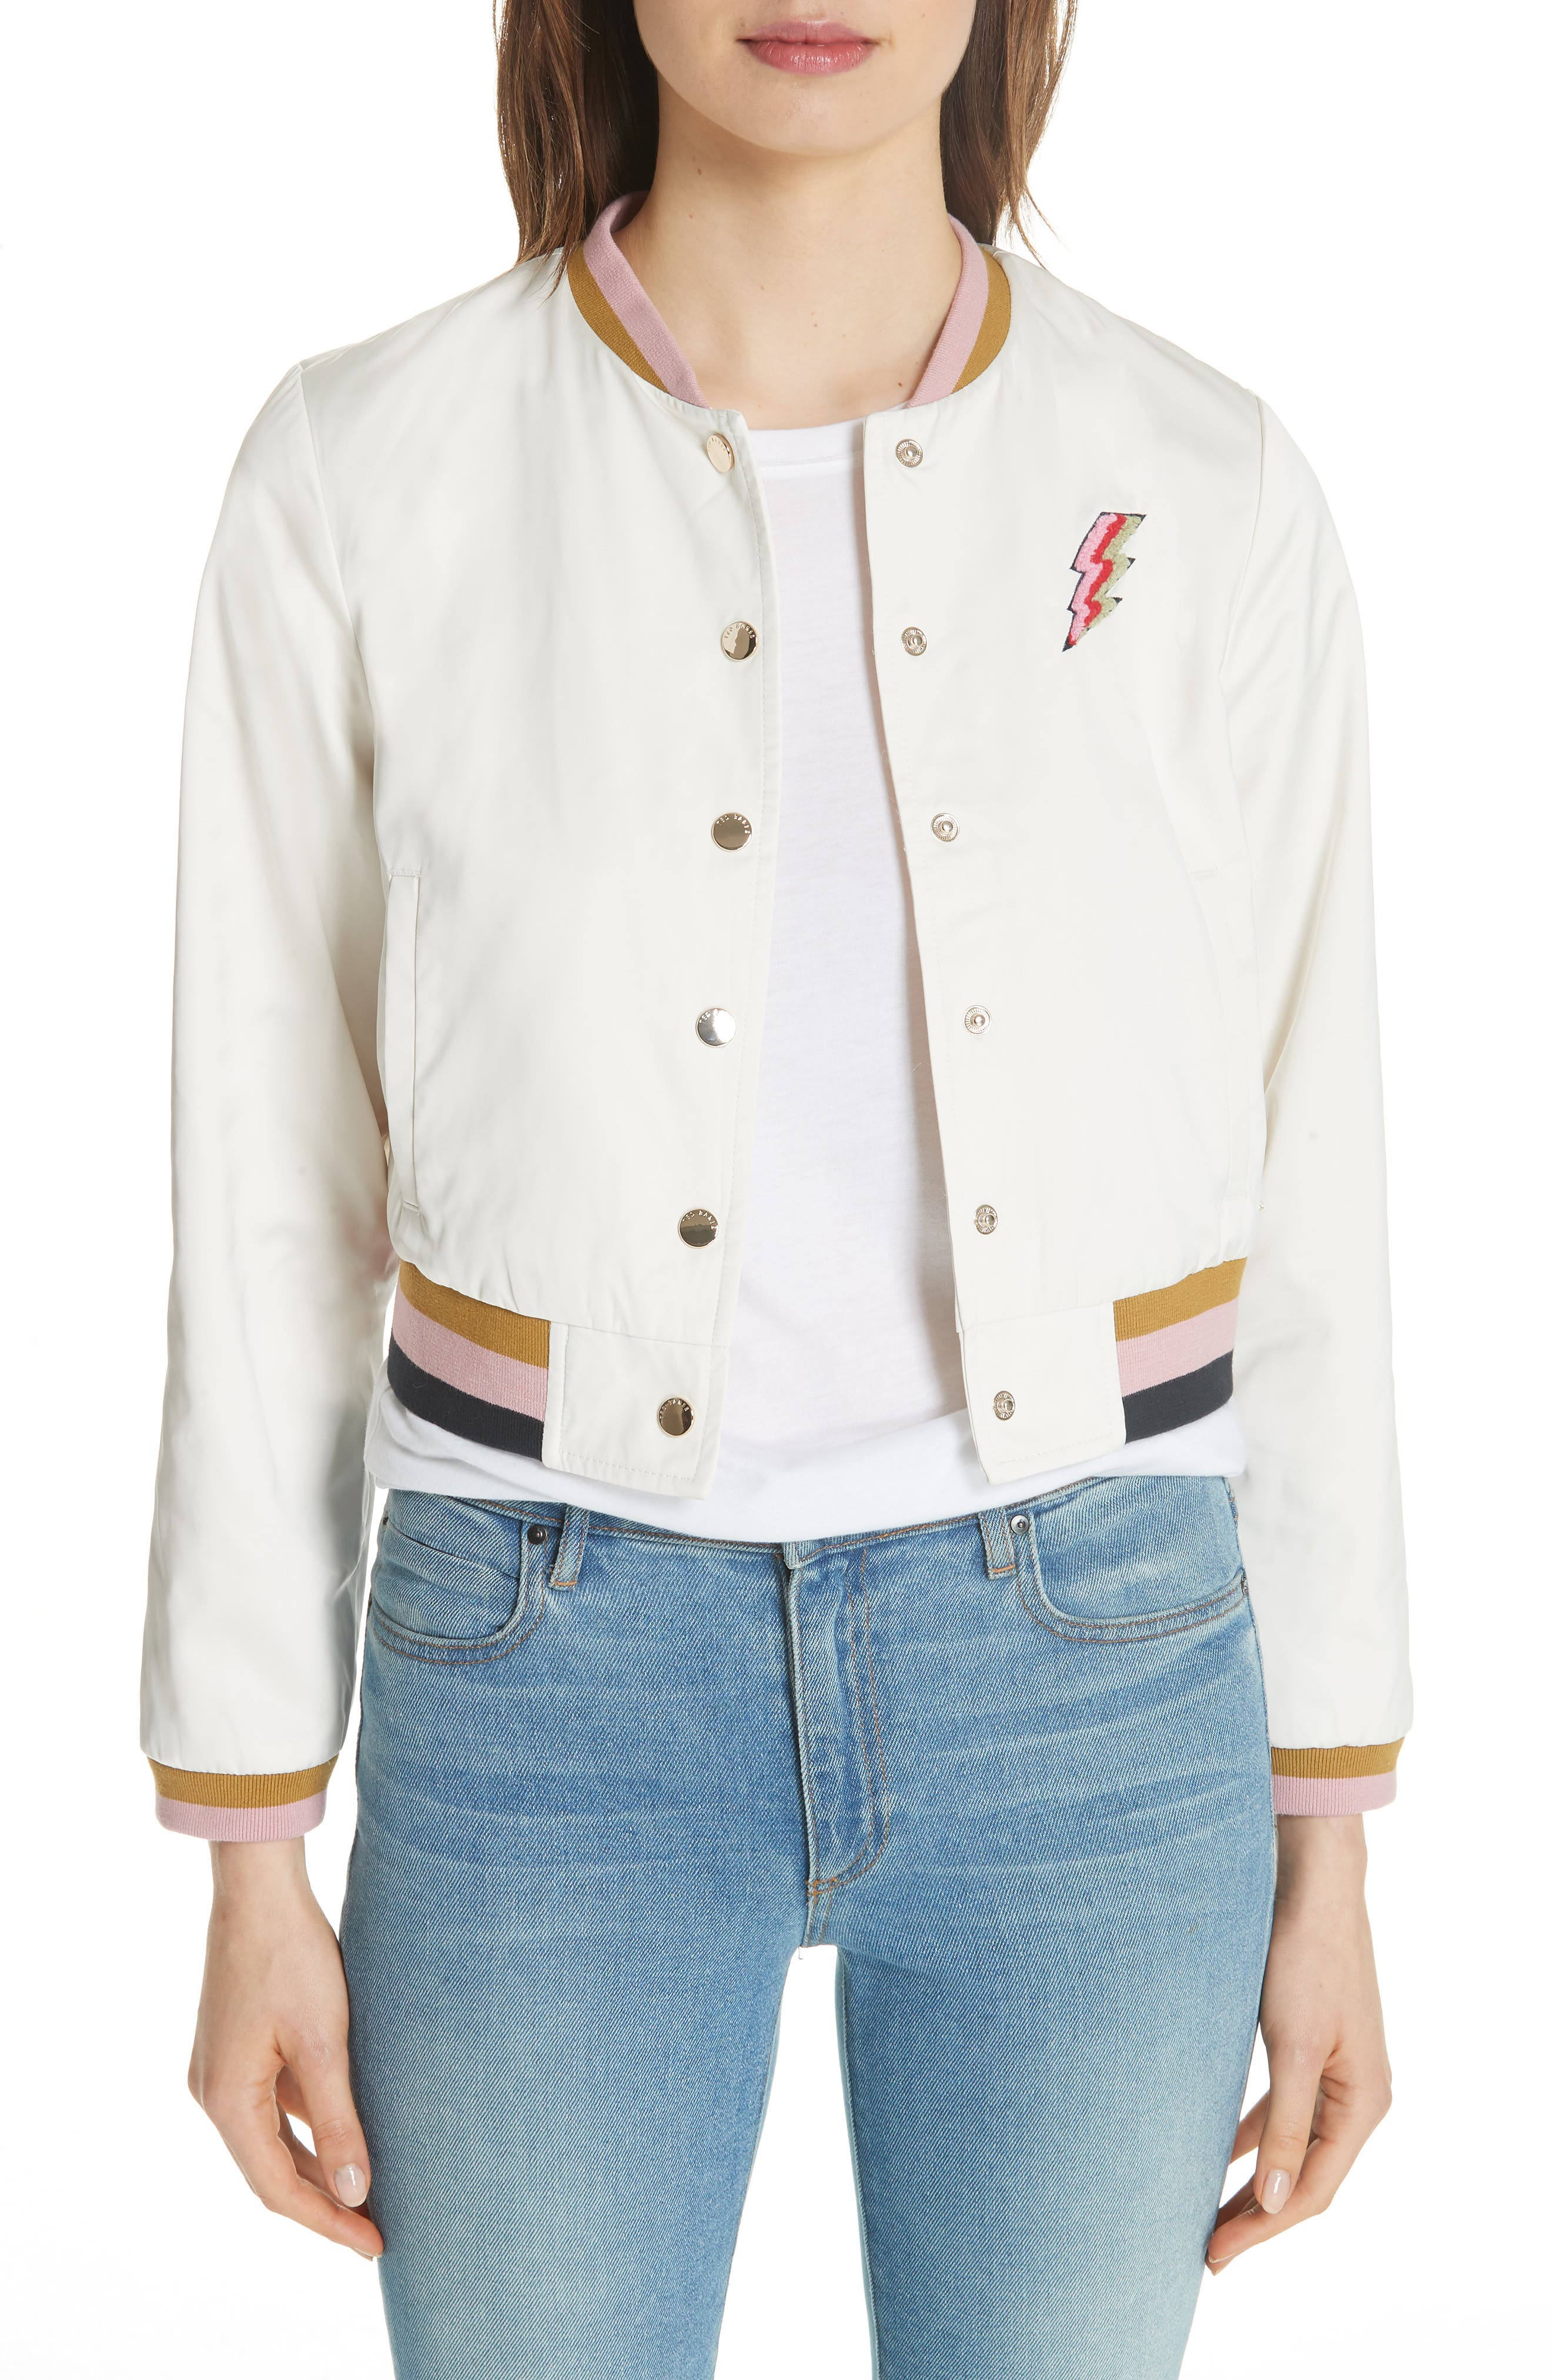 Colour by Numbers Bomber Jacket,                             Main thumbnail 1, color,                             Ivory